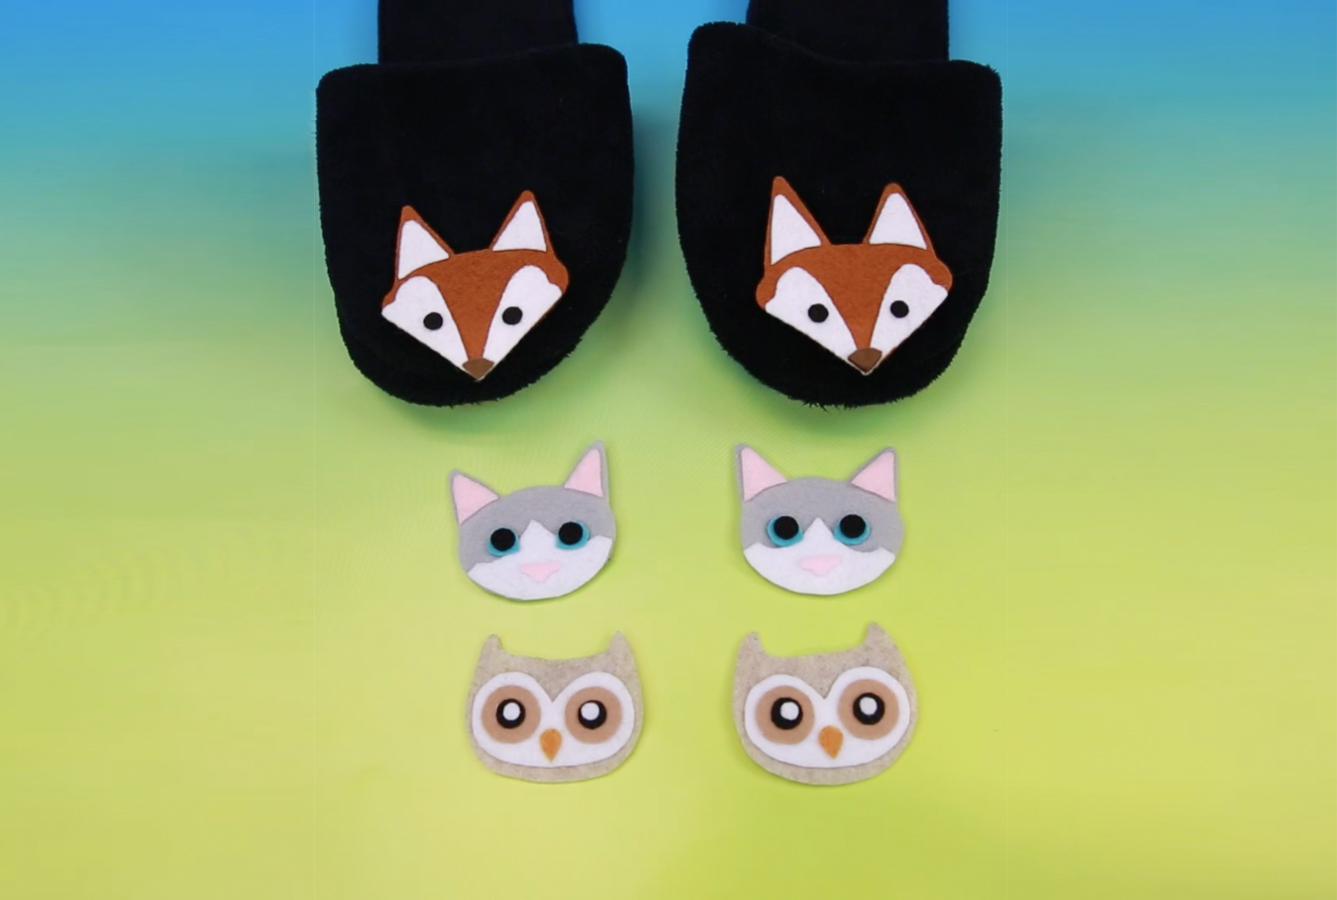 These critter slippers may just be the cutest (and coziest!) DIY you've ever seen